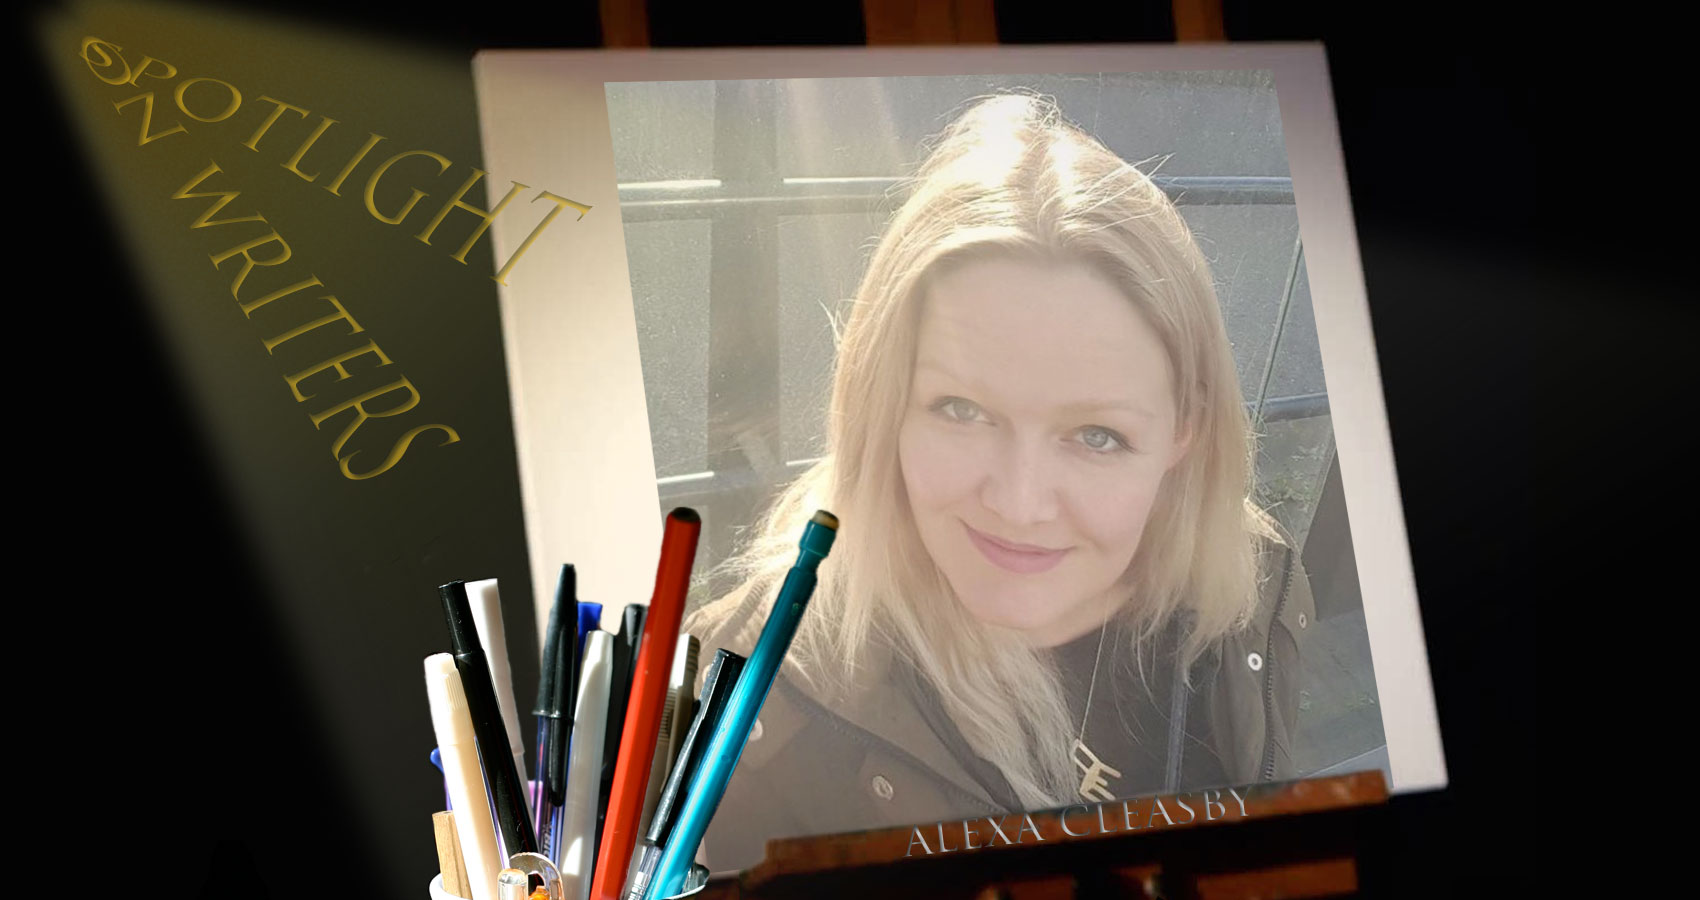 Spotlight On Writers - Alexa Cleasby at Spillwords.com